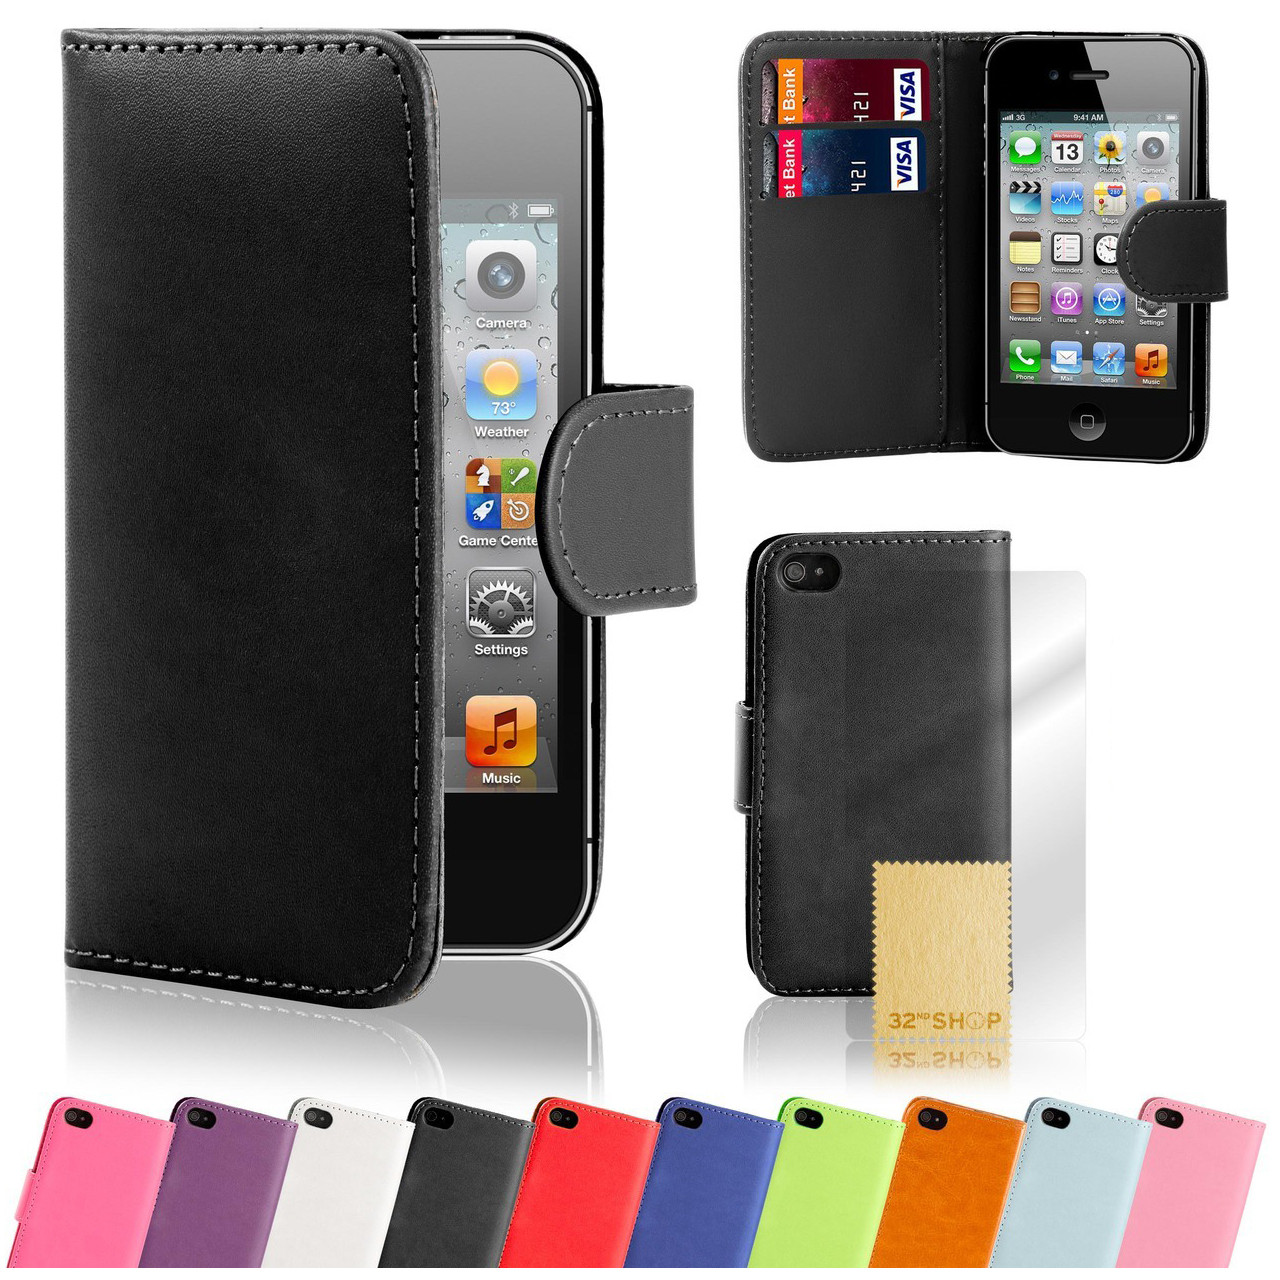 sports shoes aca41 08c3e Apple iPhone 4/4S PU Leather Book Wallet Case